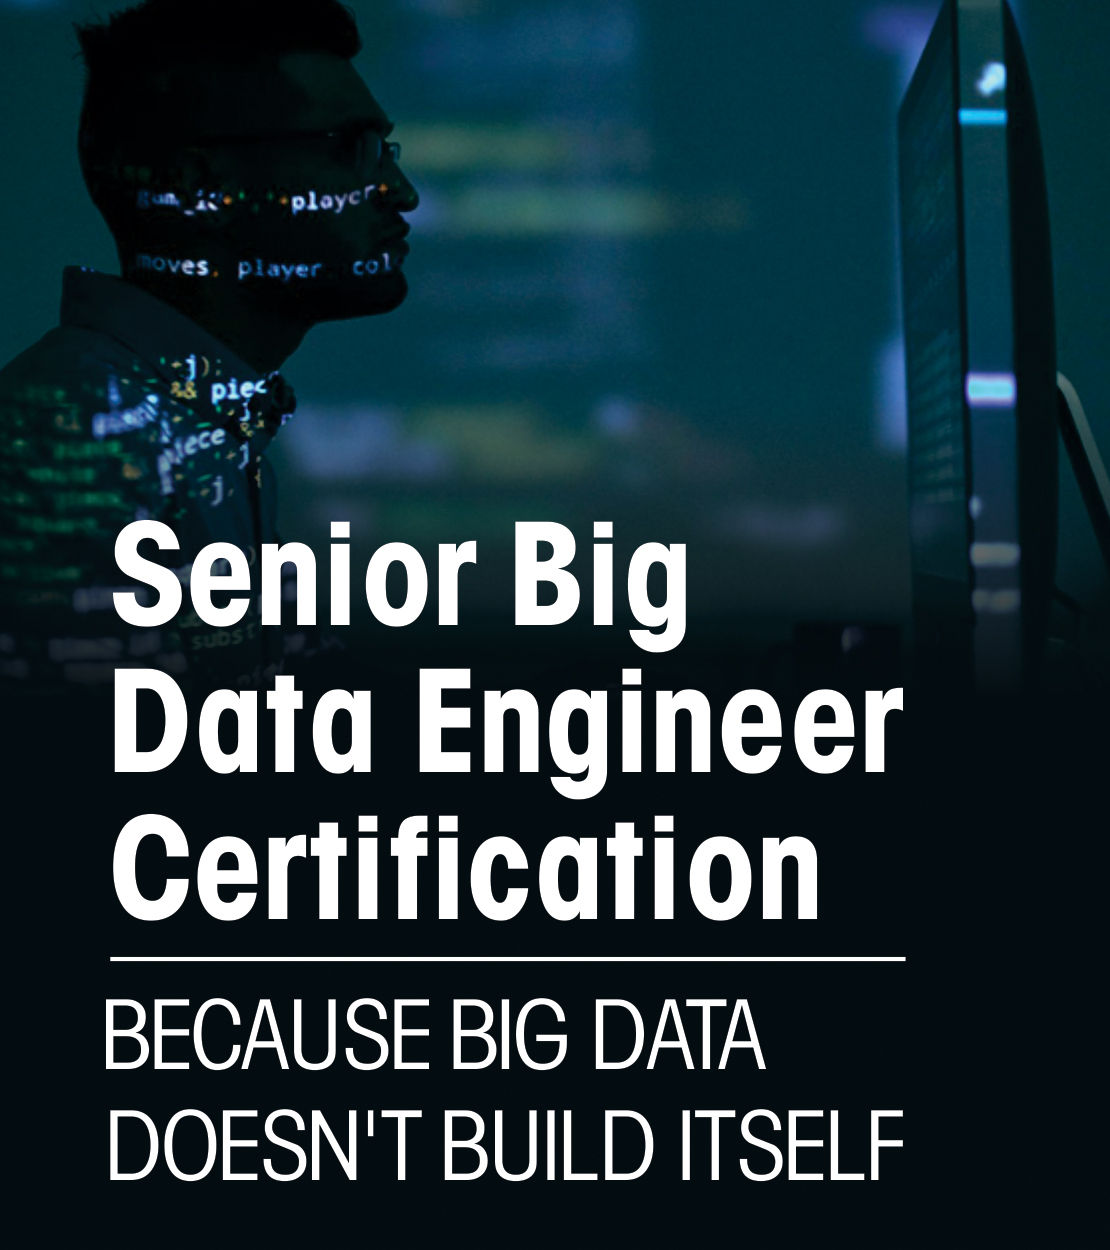 Senior Big Data Engineer Certification - Because Big Data Doesn't Build Itself